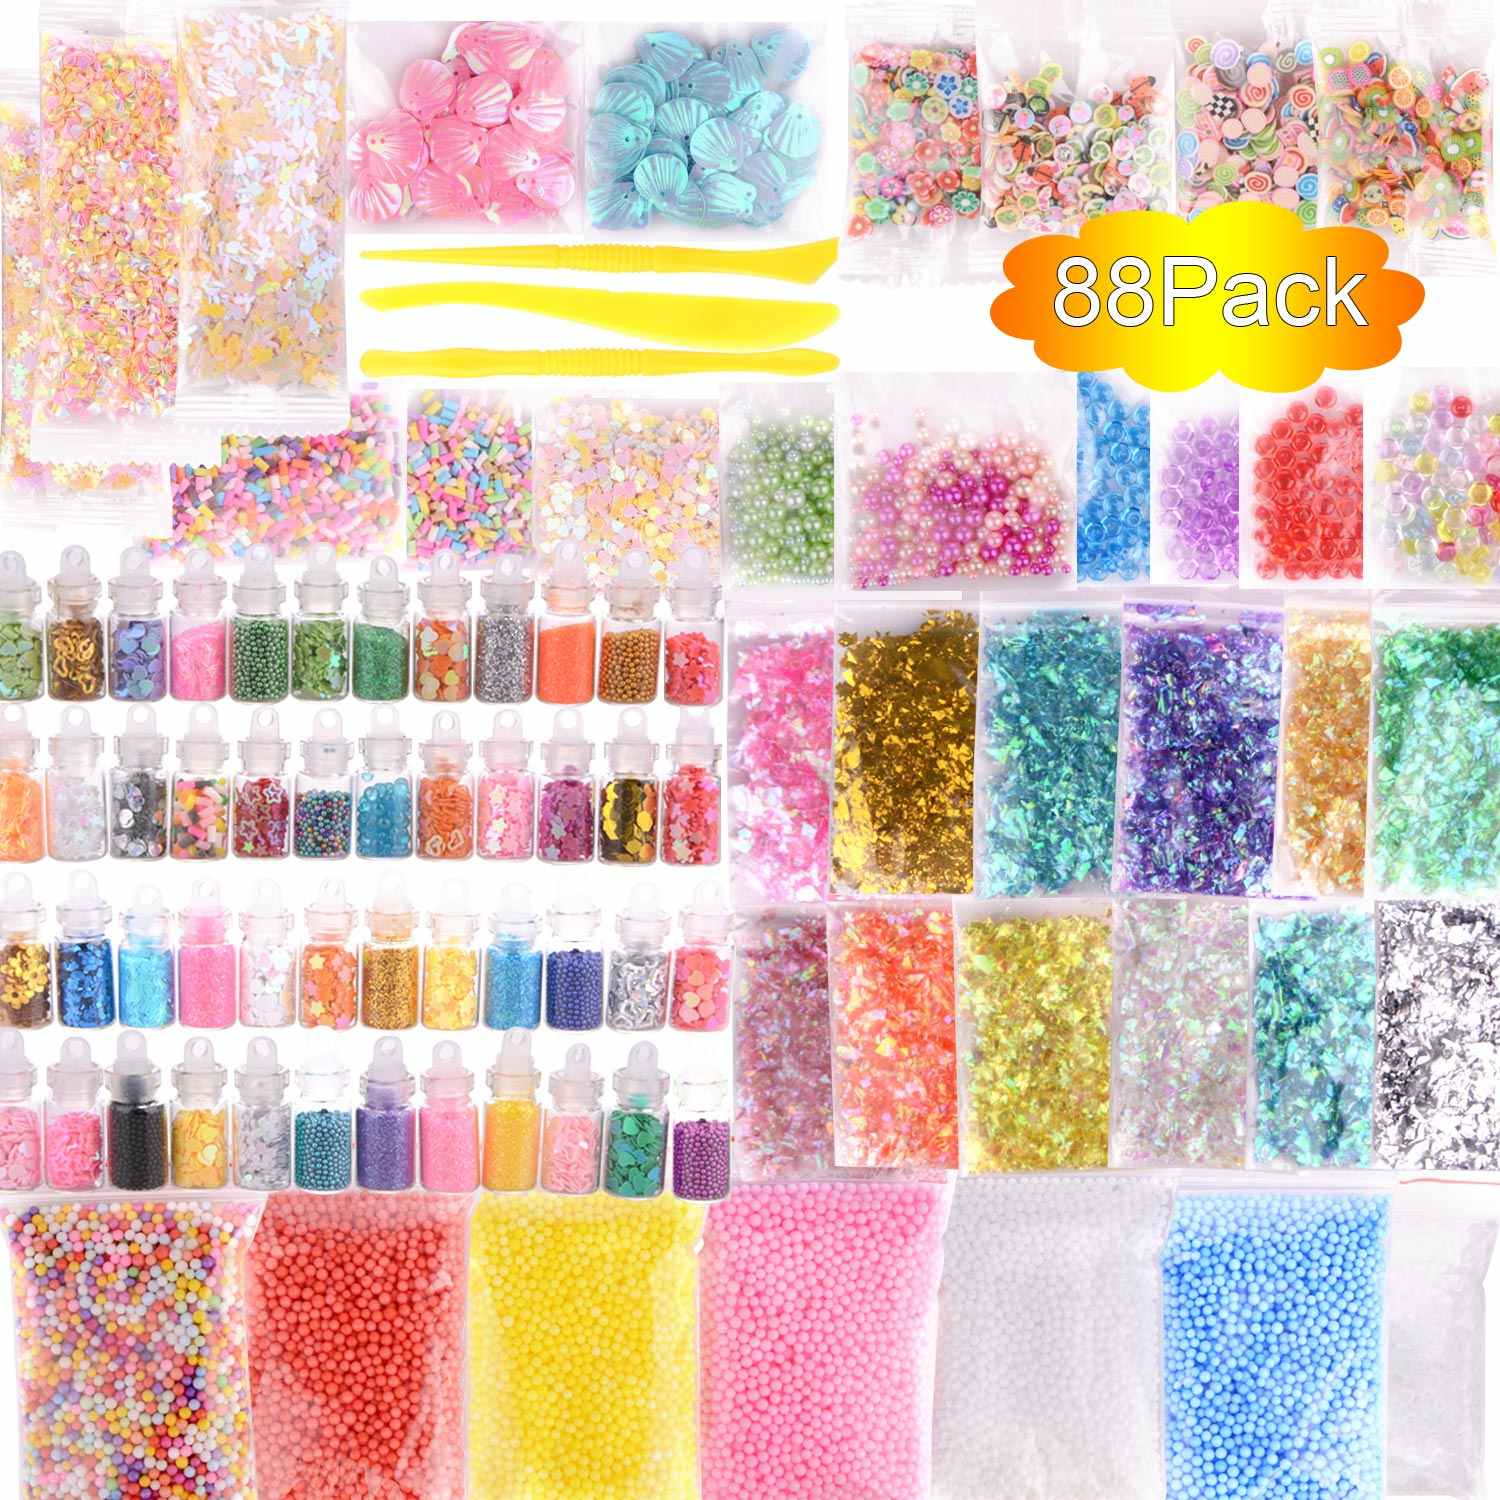 88pack/set Slime Making Kit Styrofoam Foam Balls Beads Charms Glitter Jars Containers Slime for DIY Craft Homemade Party Supply